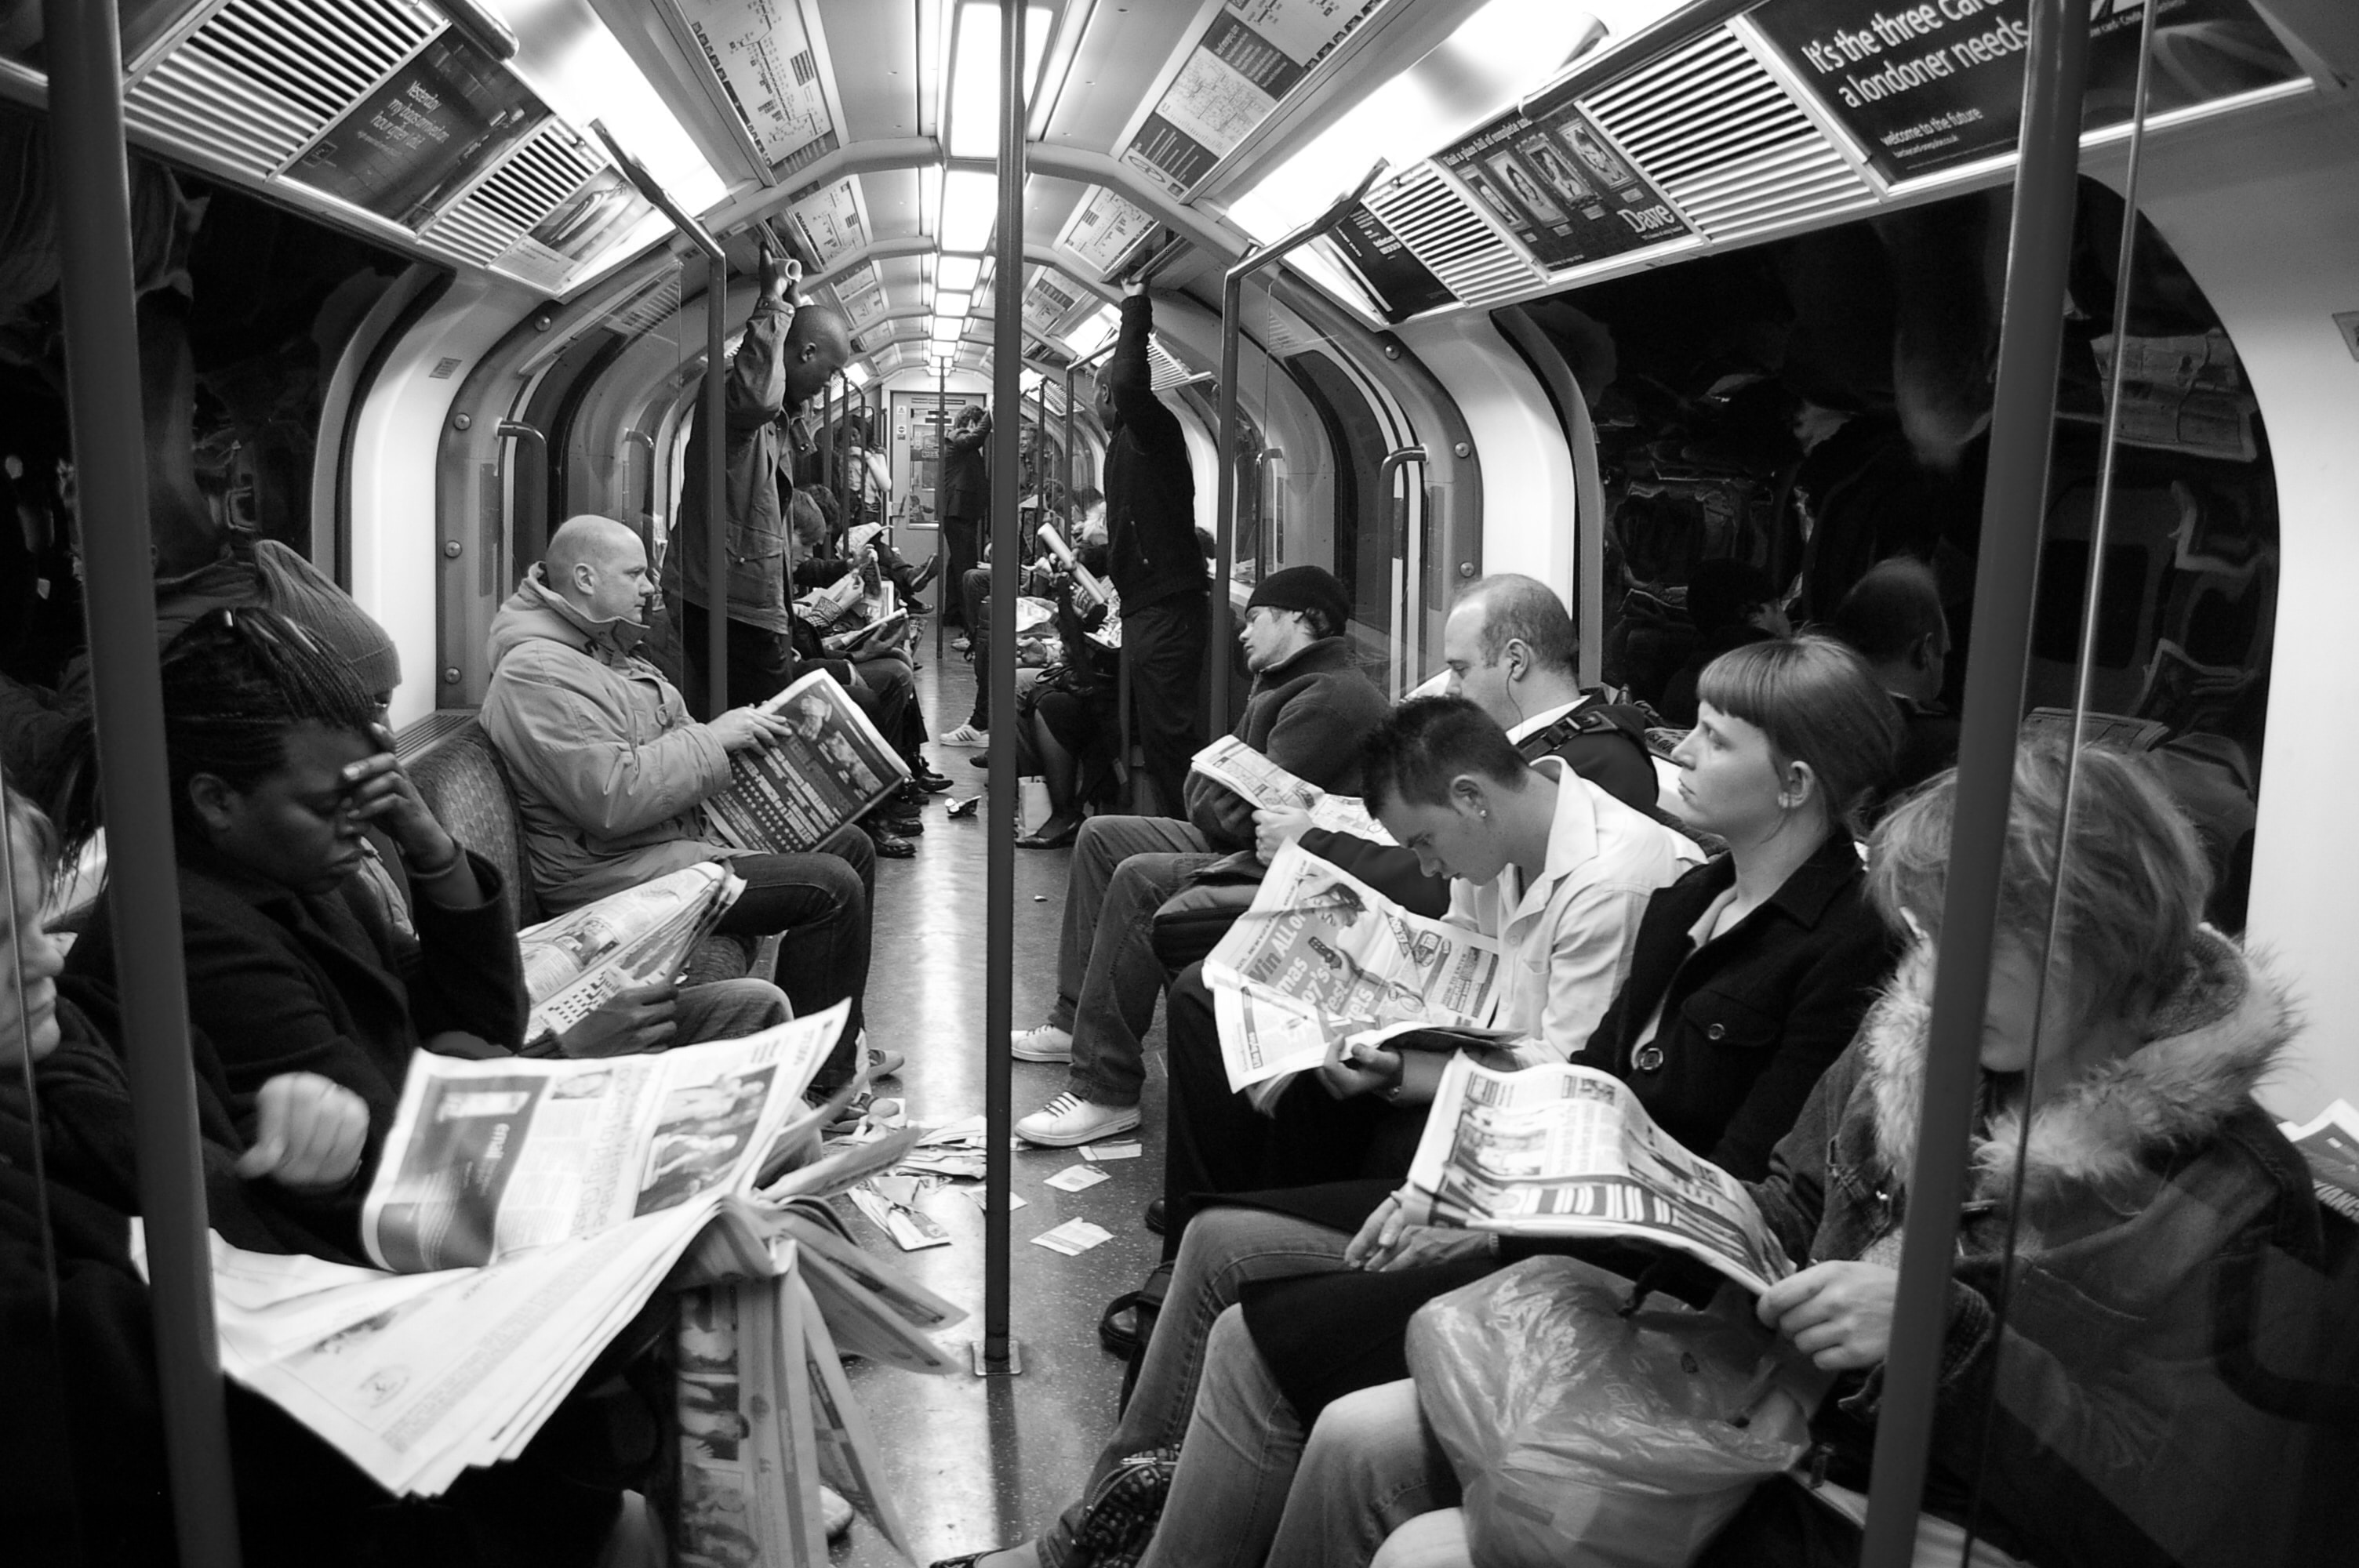 commuters reading on a subway